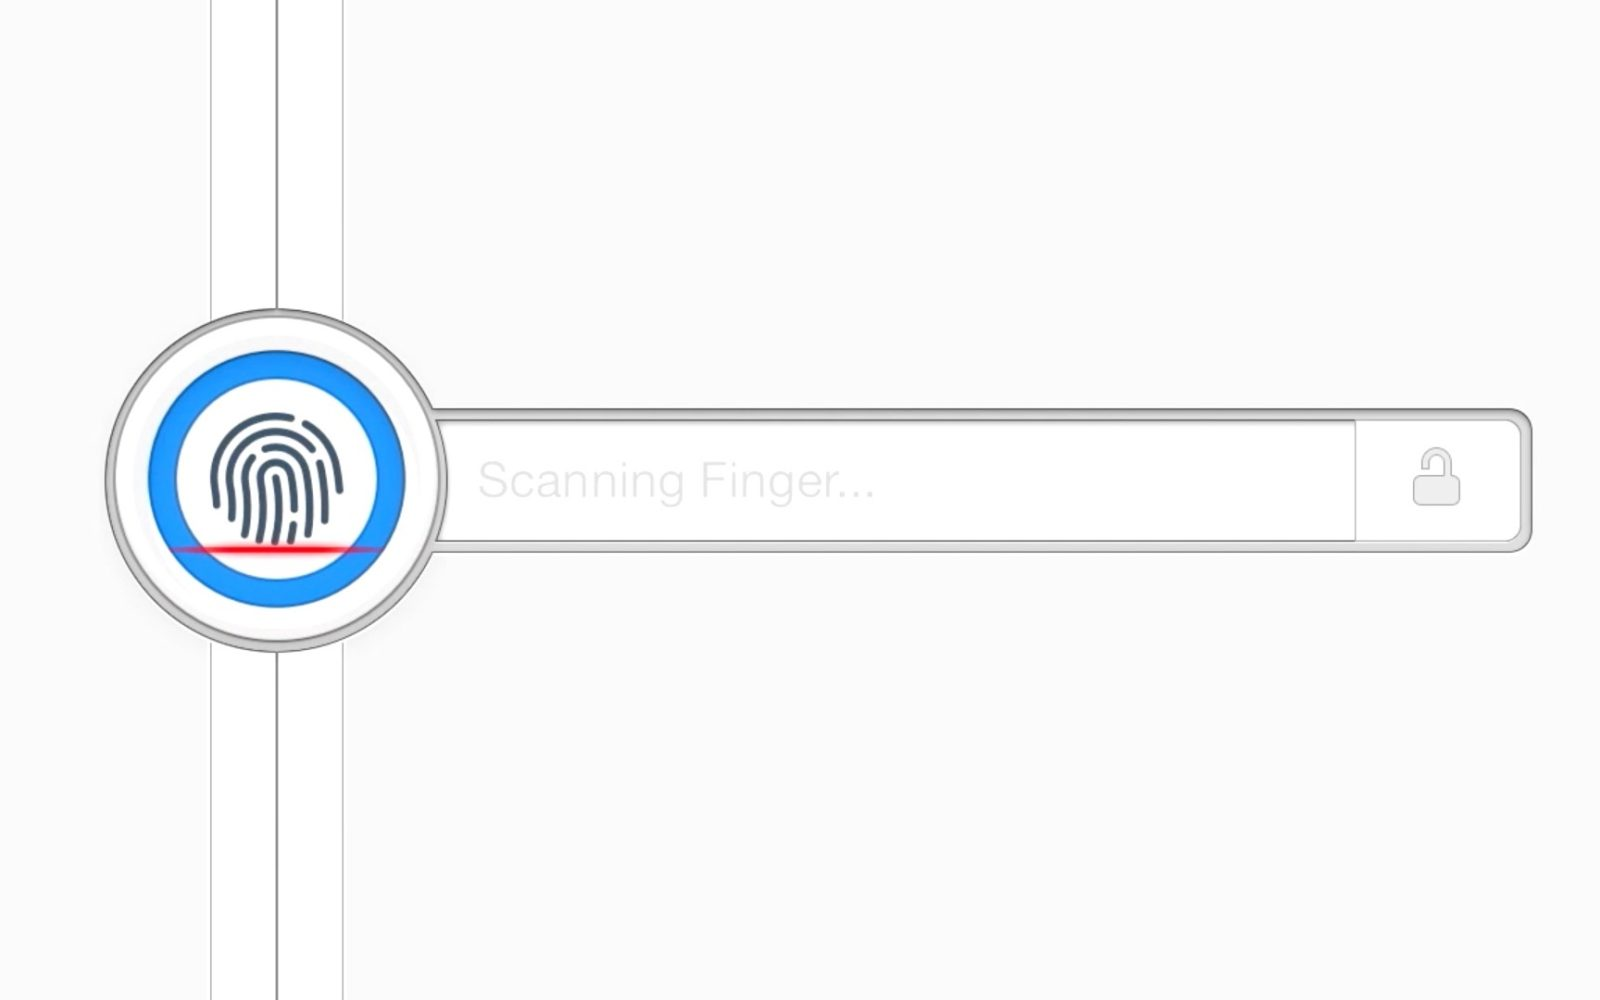 1Password for macOS now supports Touch ID, Touch Bar on new MacBook